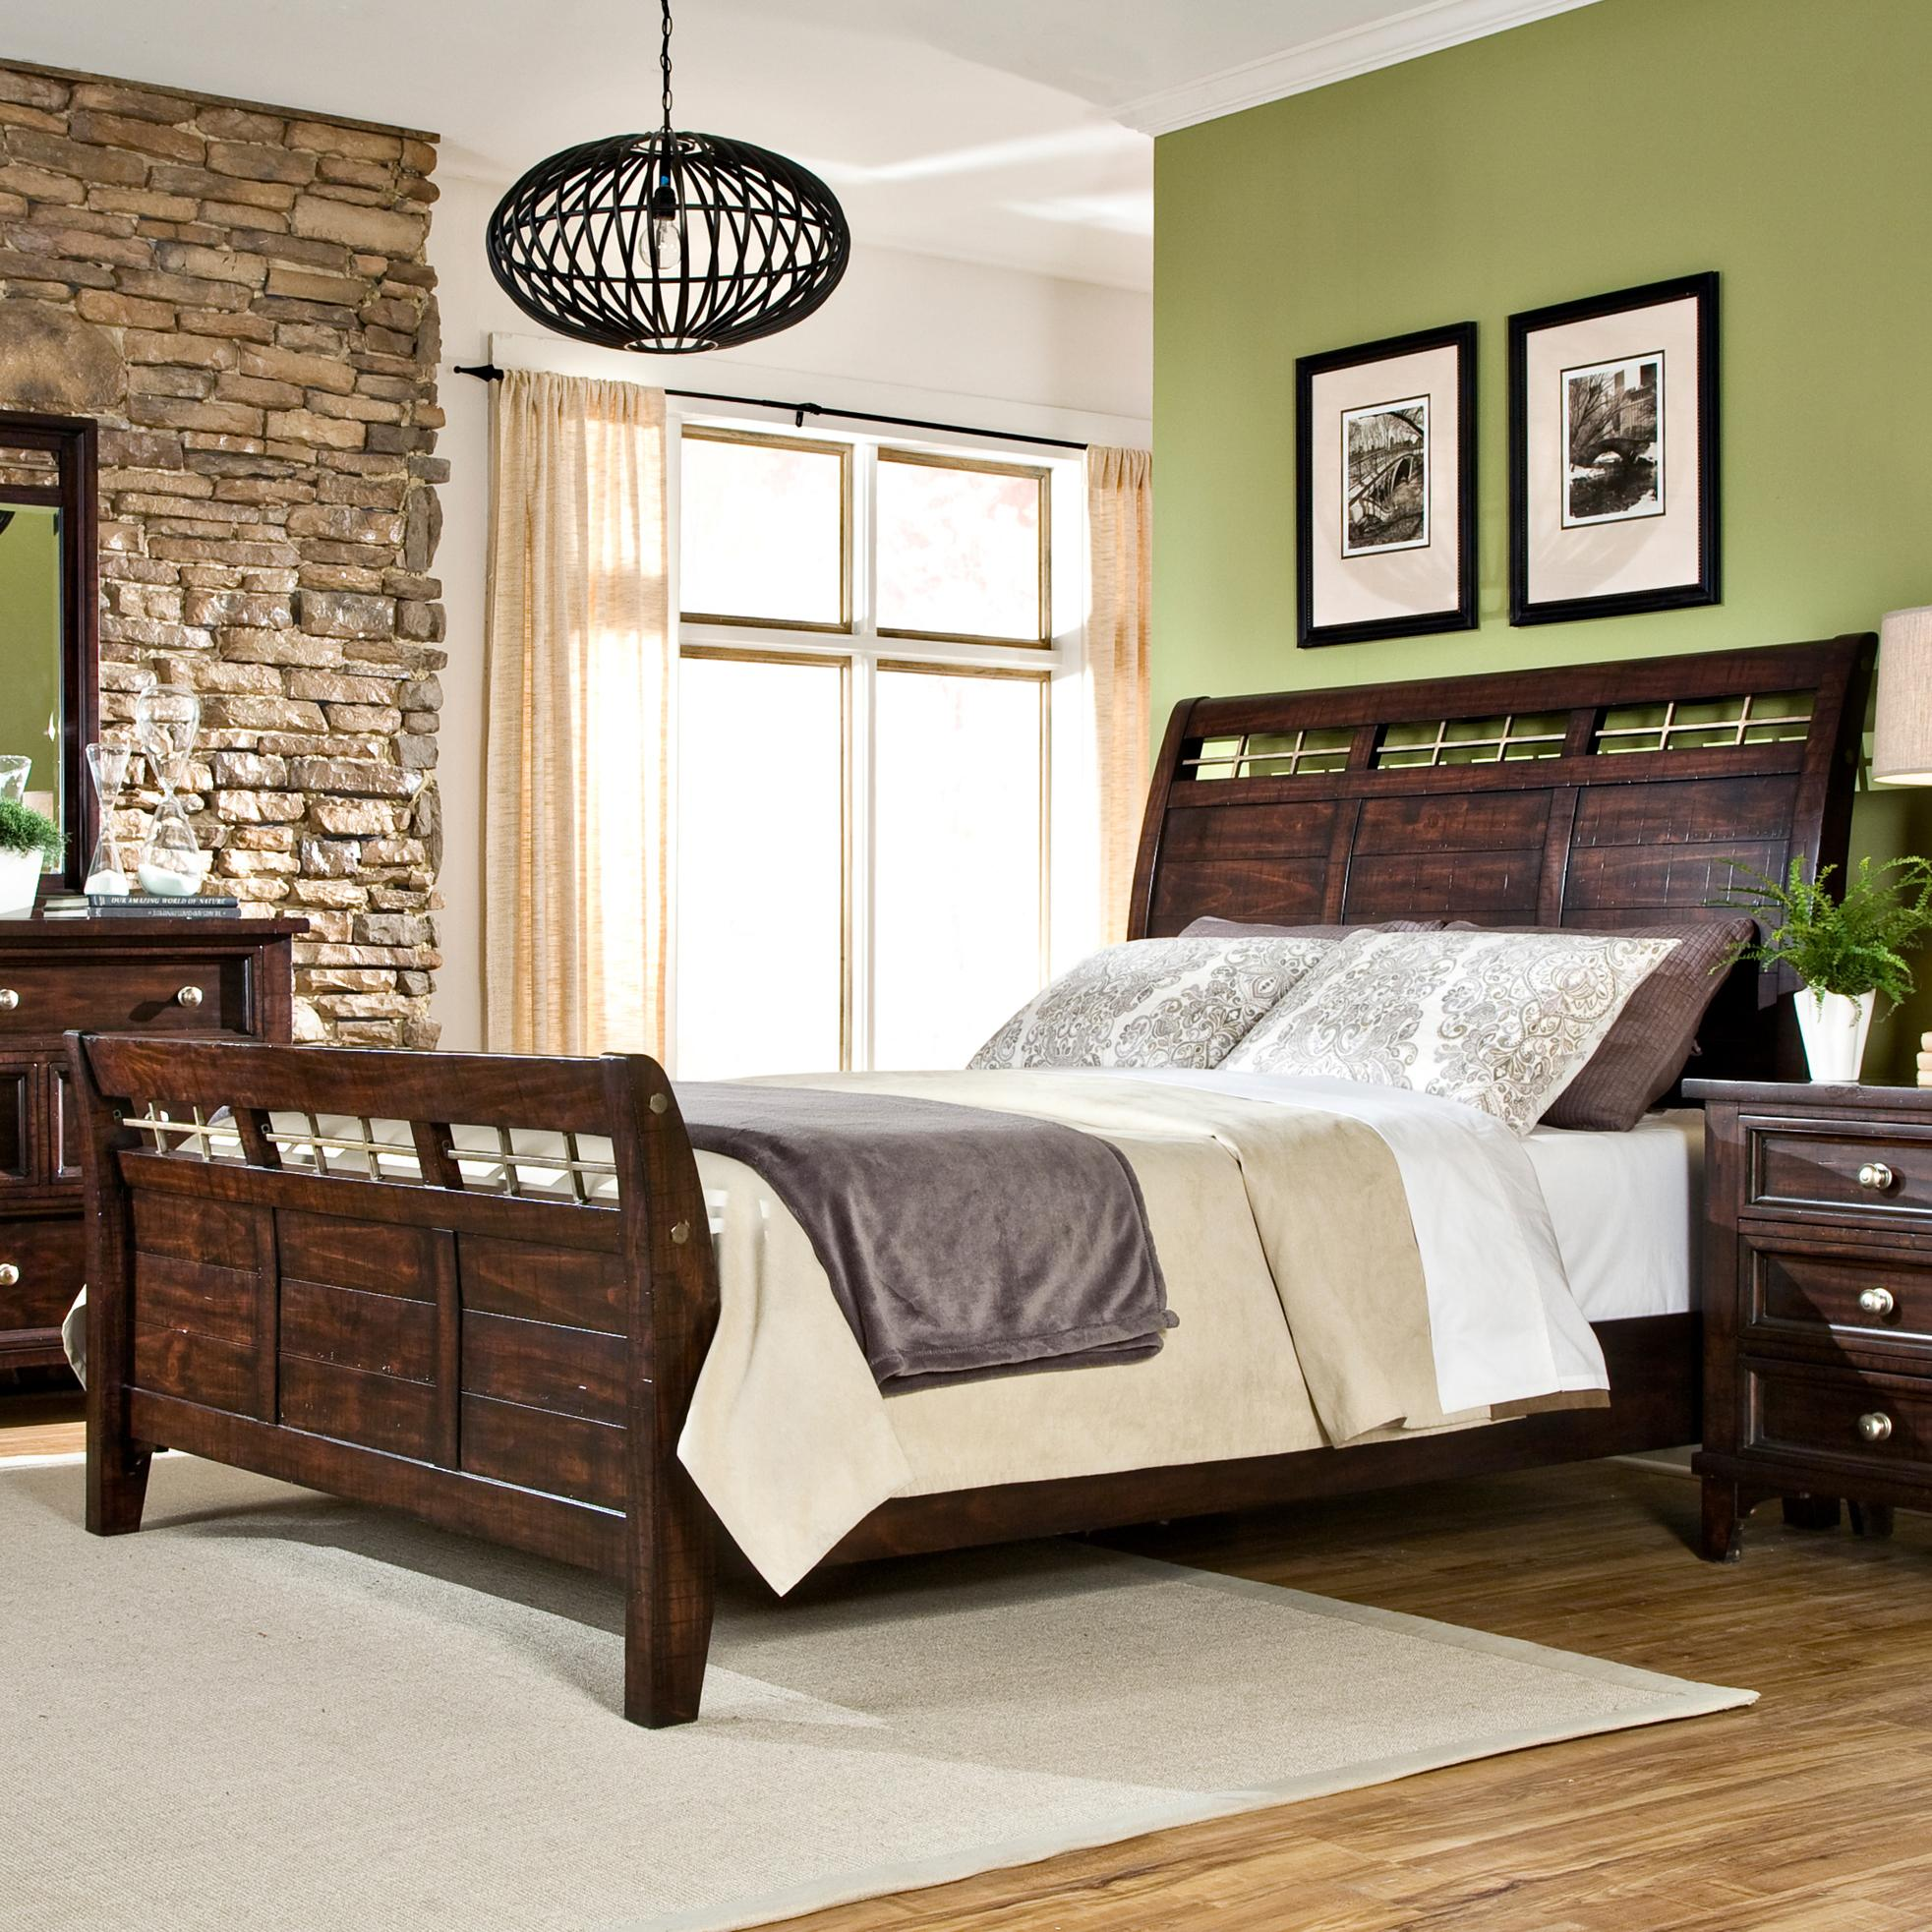 Intercon Hayden King Sleigh Bed - Item Number: HY-BR-5950K-RSE-C